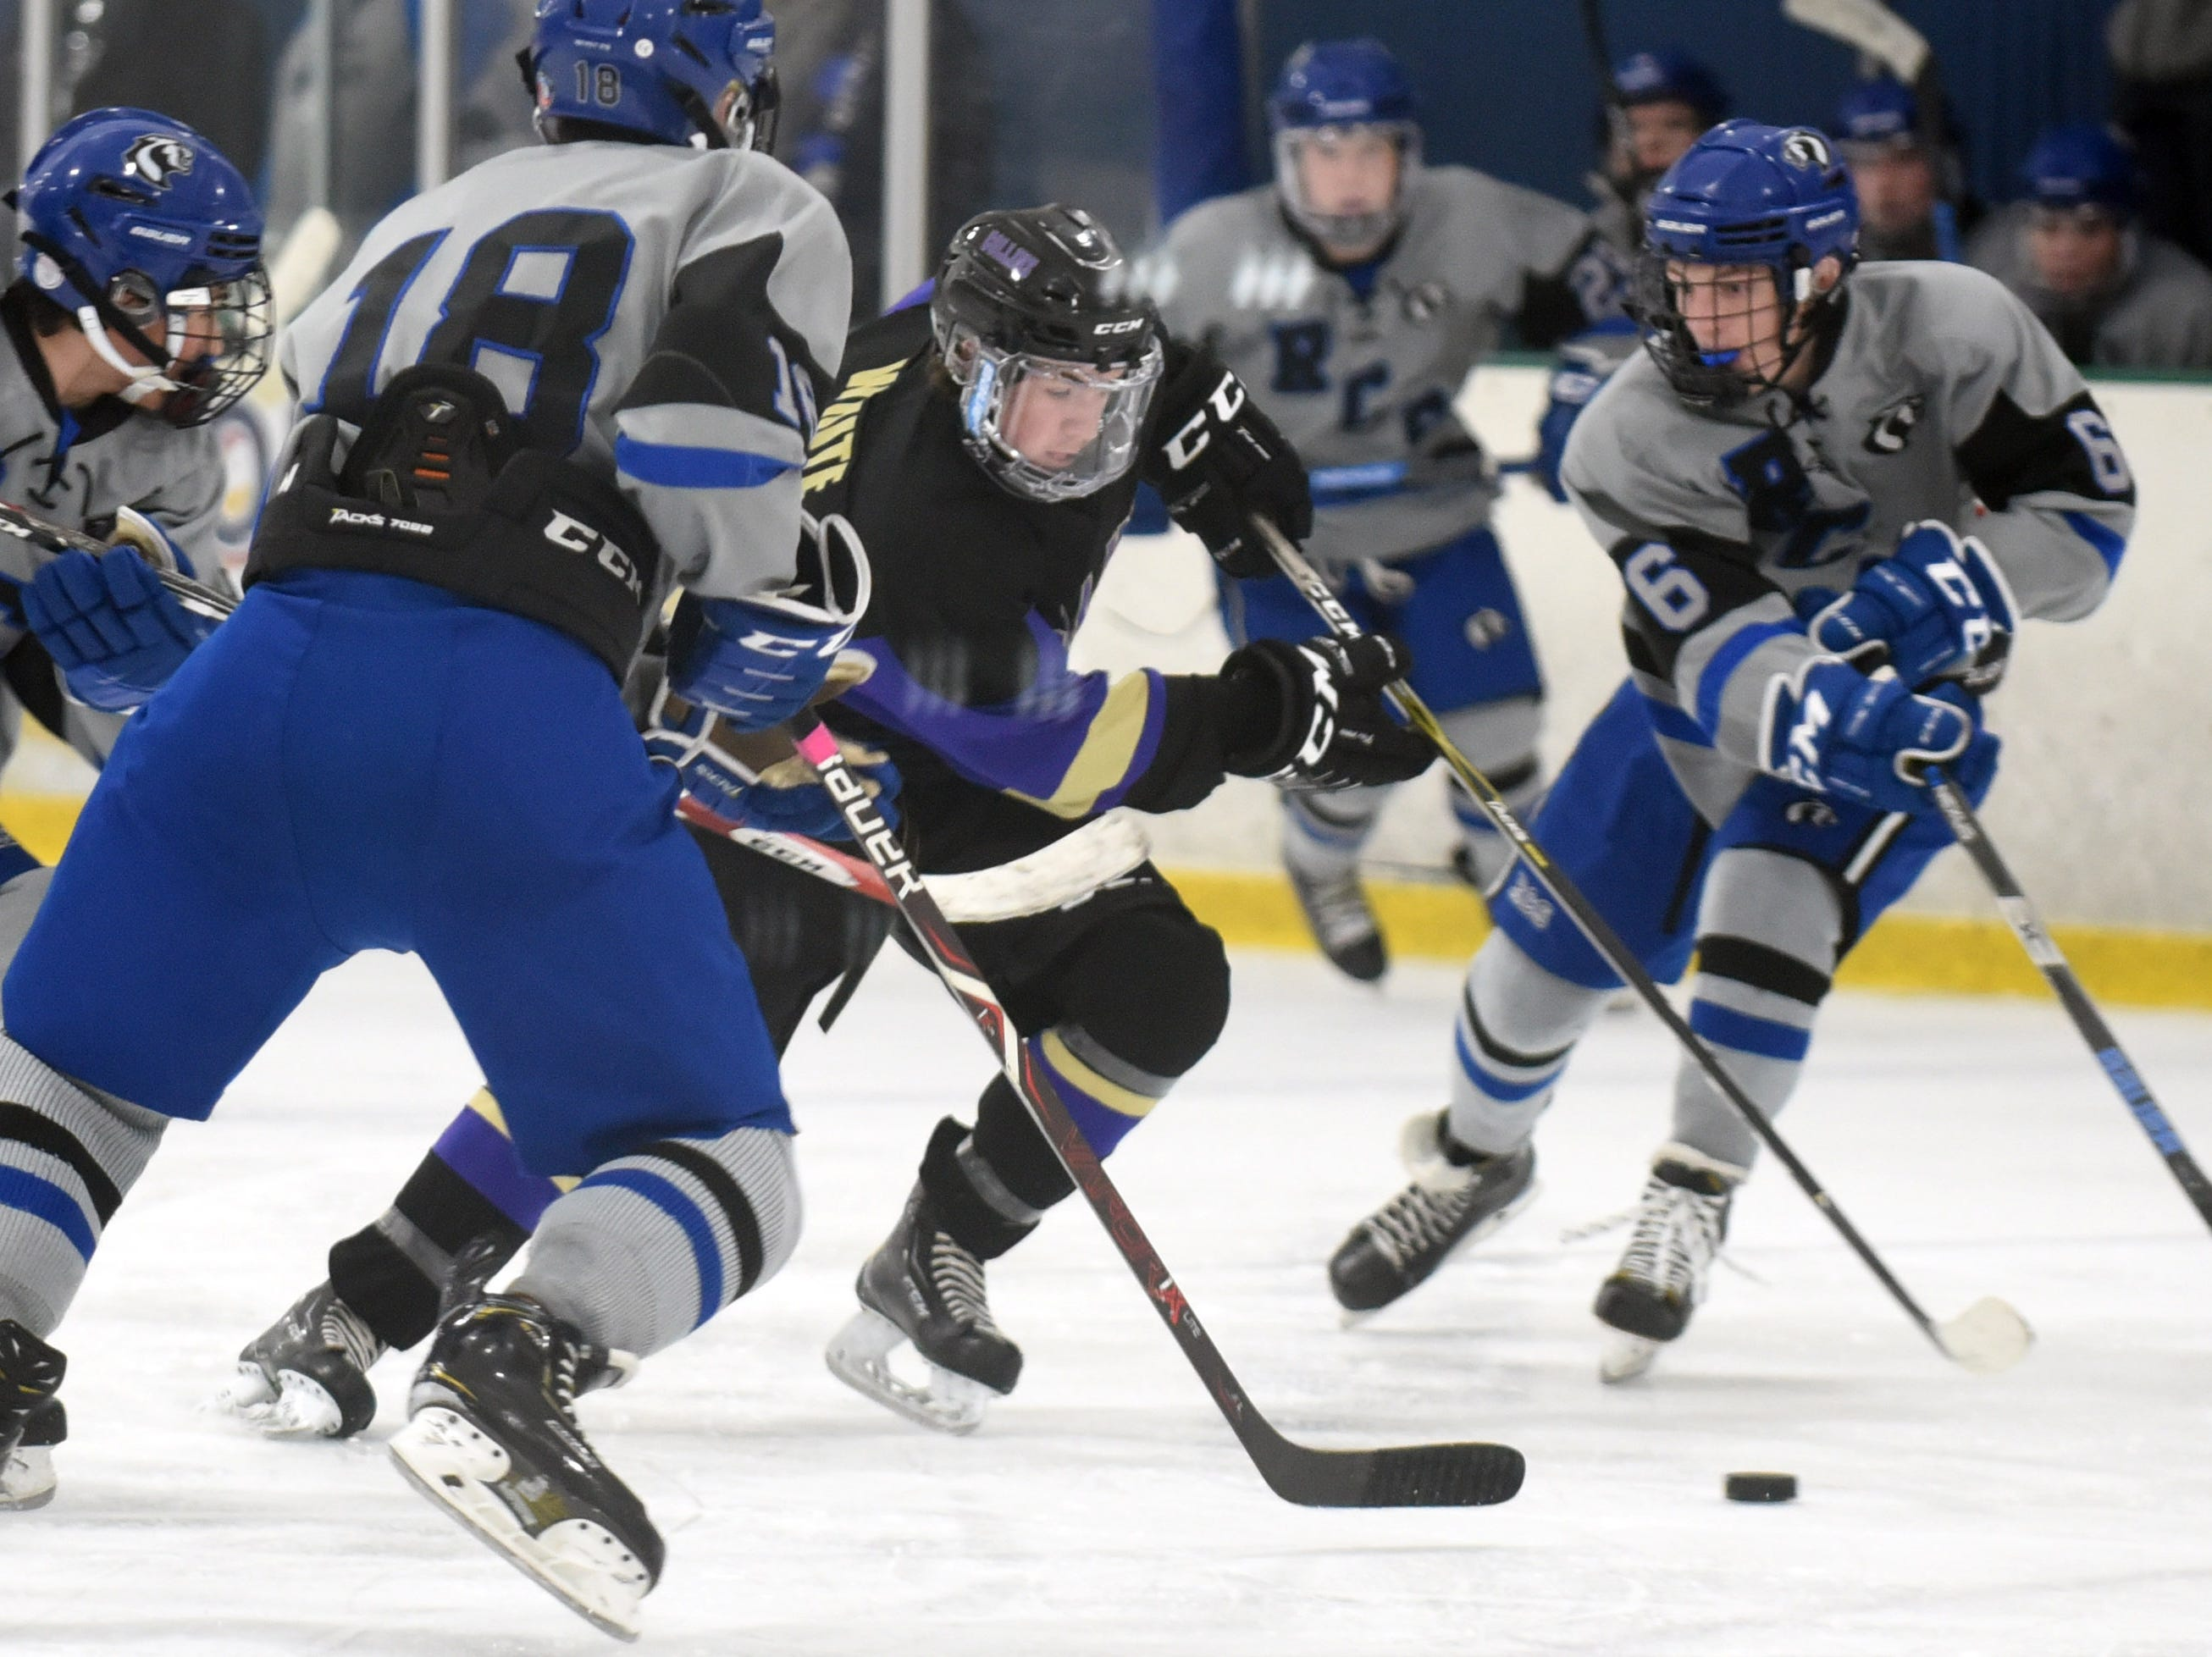 Fort Collins' Denny White tries to break through Resurrection Christian's defenders Perry McIntire and Jake Little during the game on Saturday, Feb 2, at NoCo Ice Center, 7900 N Fairgrounds Ave, in Fort Collins.